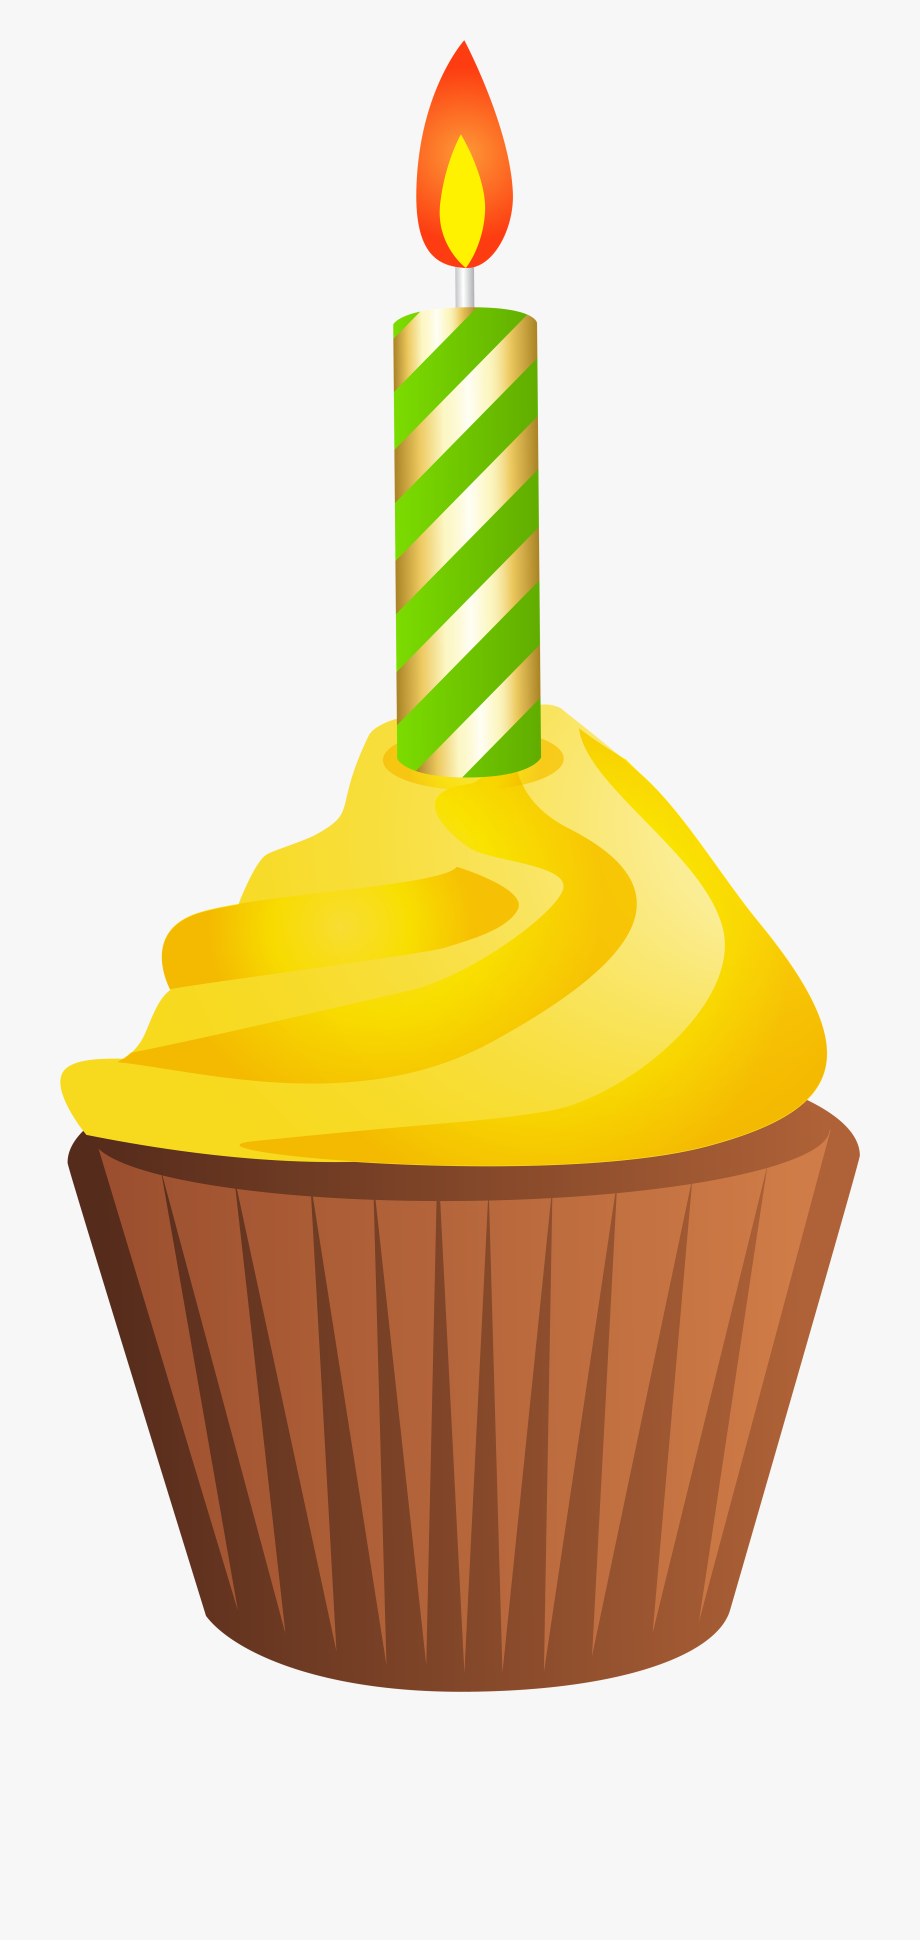 Birthday Muffin With Candle Png Clip Art Ⓒ.